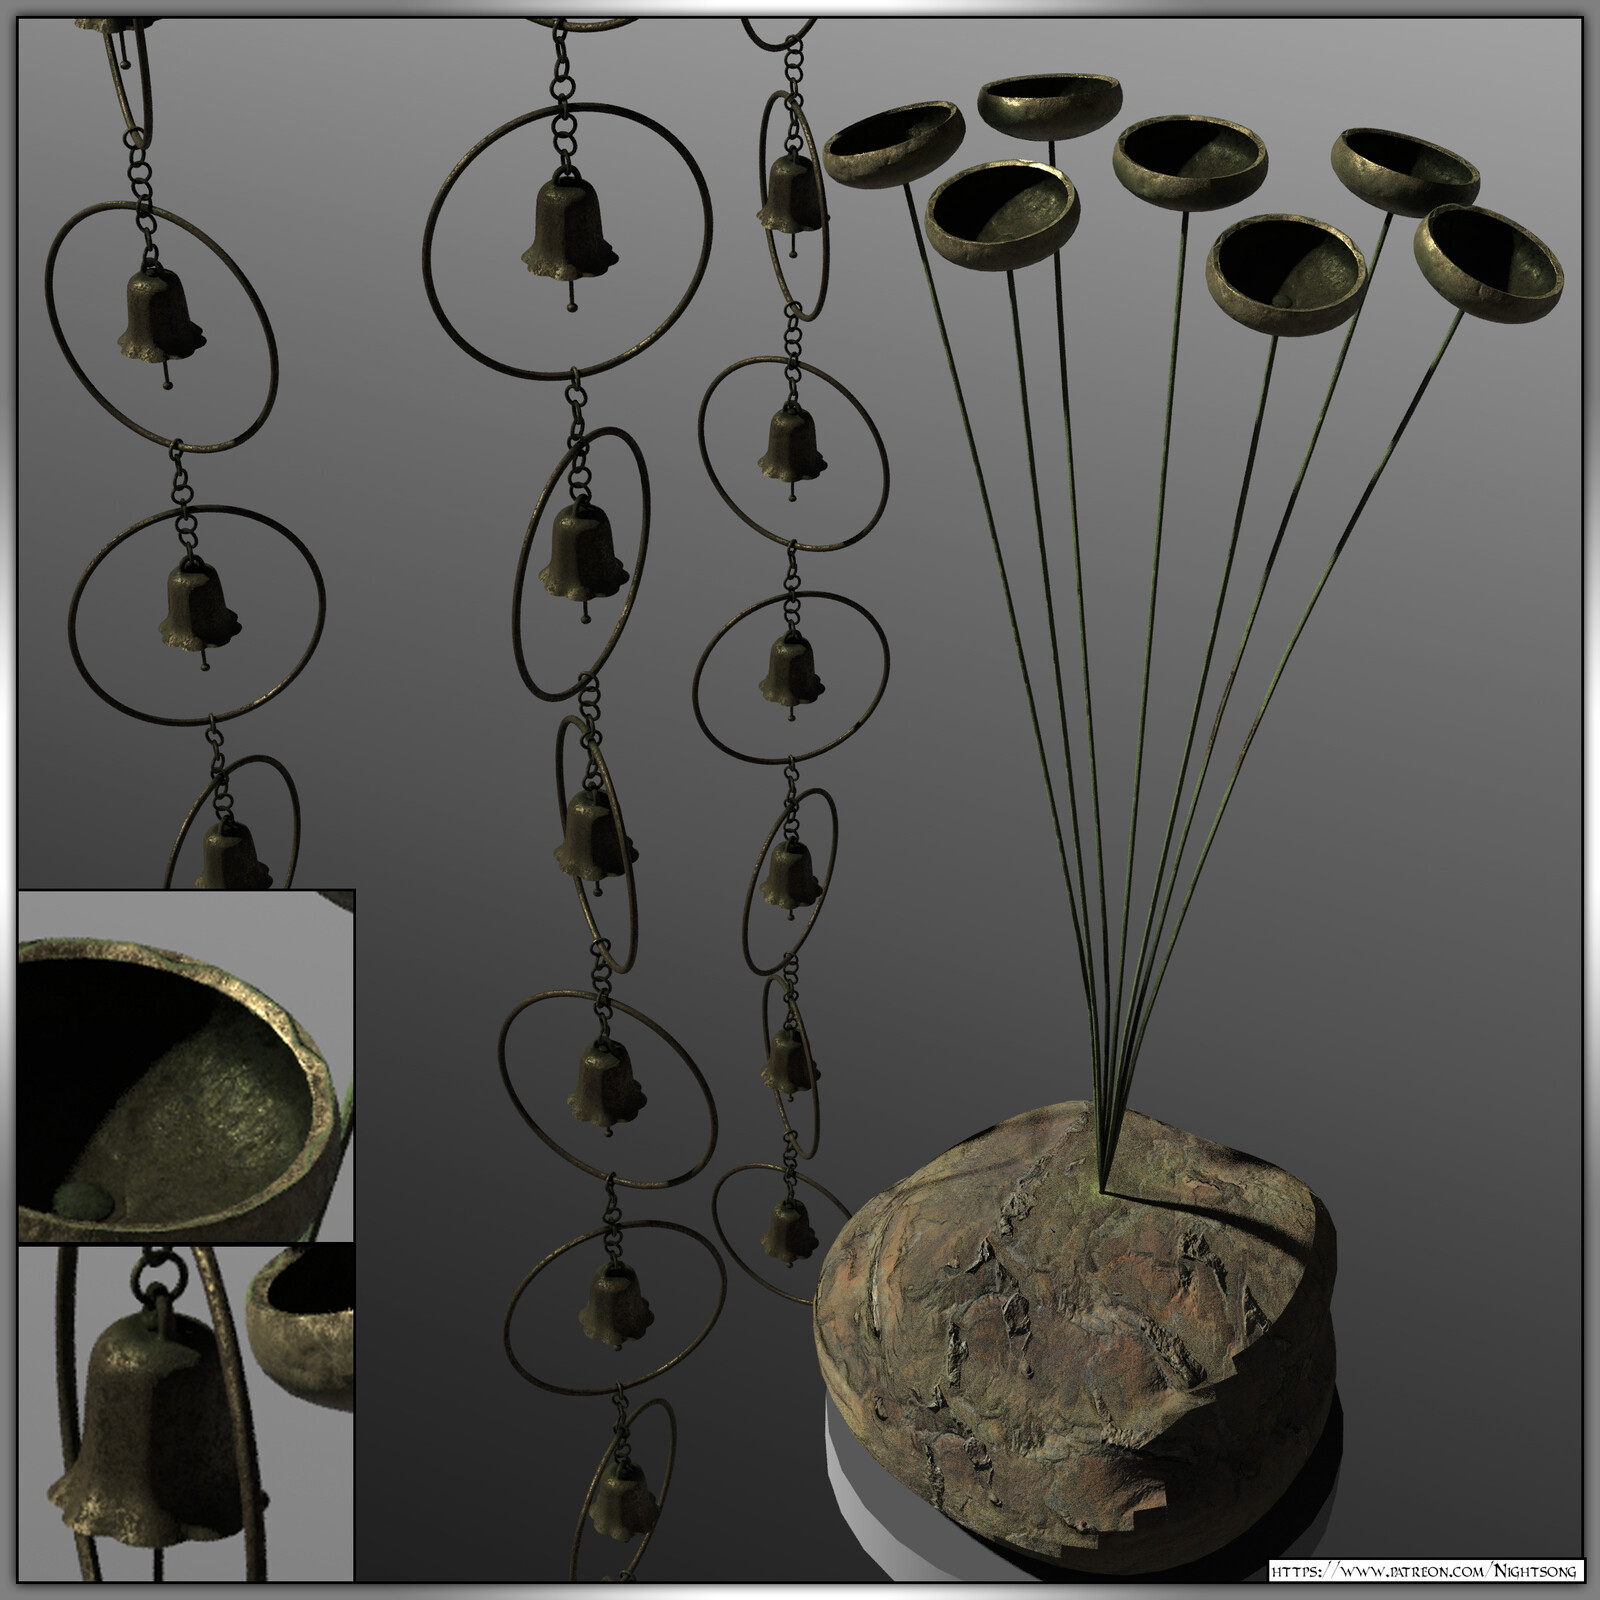 3D Rain Chain and Chimes: Patreon 3D Model Archive